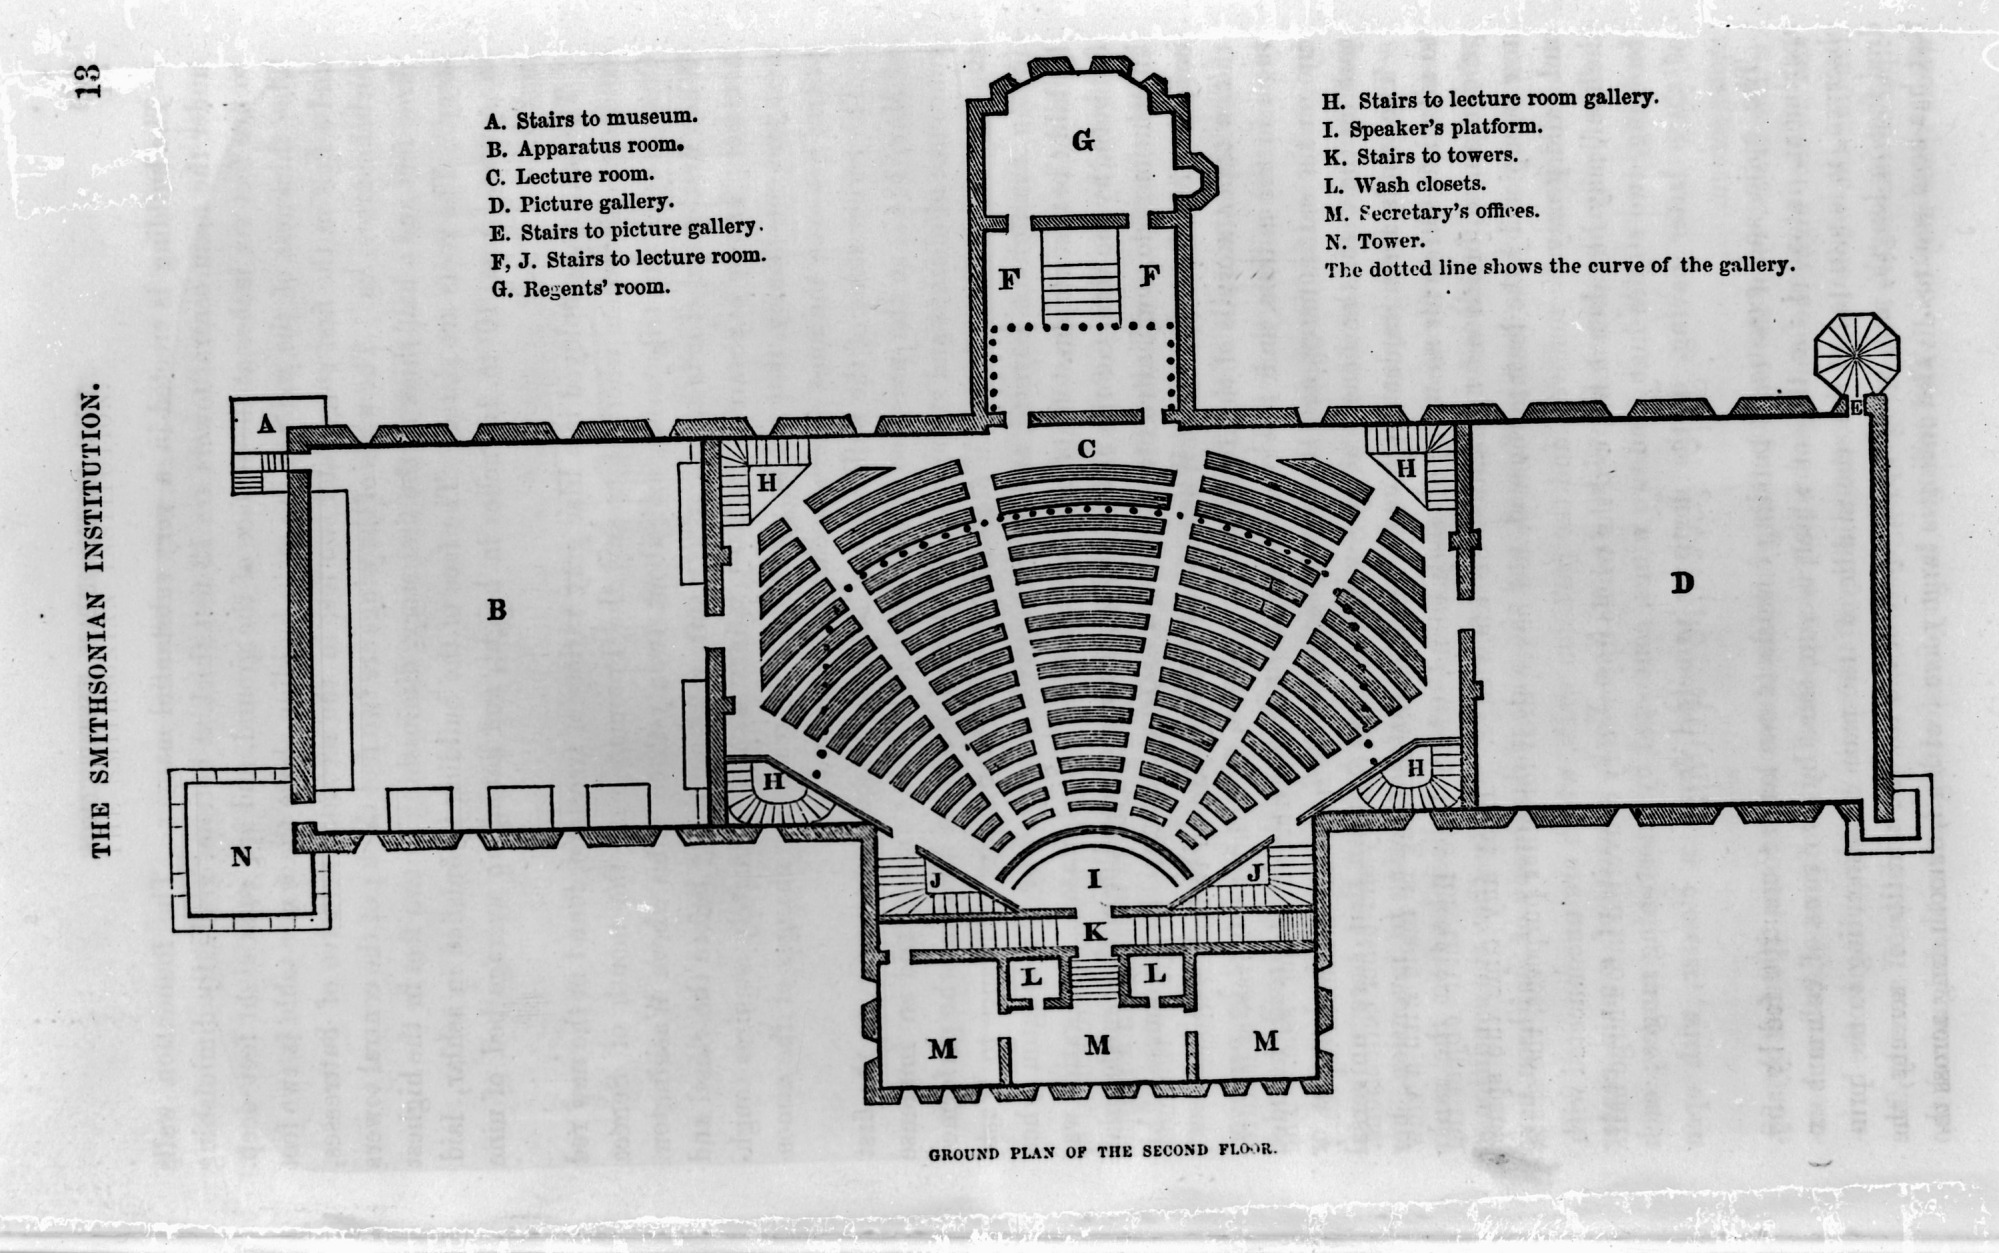 First Smithsonian Guidebook Published, September 1857, Smithsonian Archives - History Div.